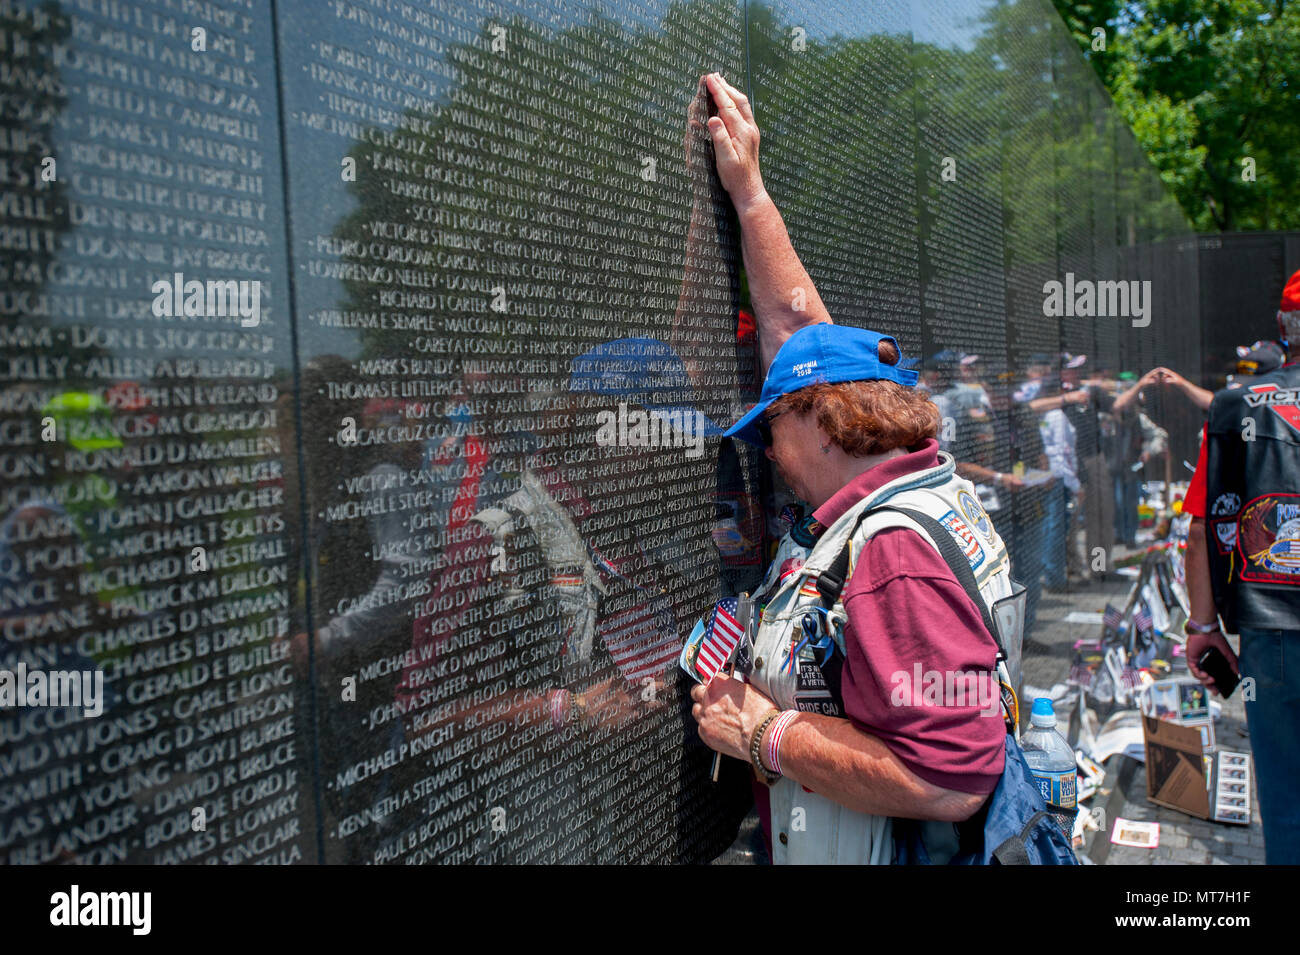 usa-washington-dc-vietnam-war-memorial-wall-people-come-to-grieve-and-remember-loved-ones-and-bring-items-to-honor-them-MT7H1F.jpg